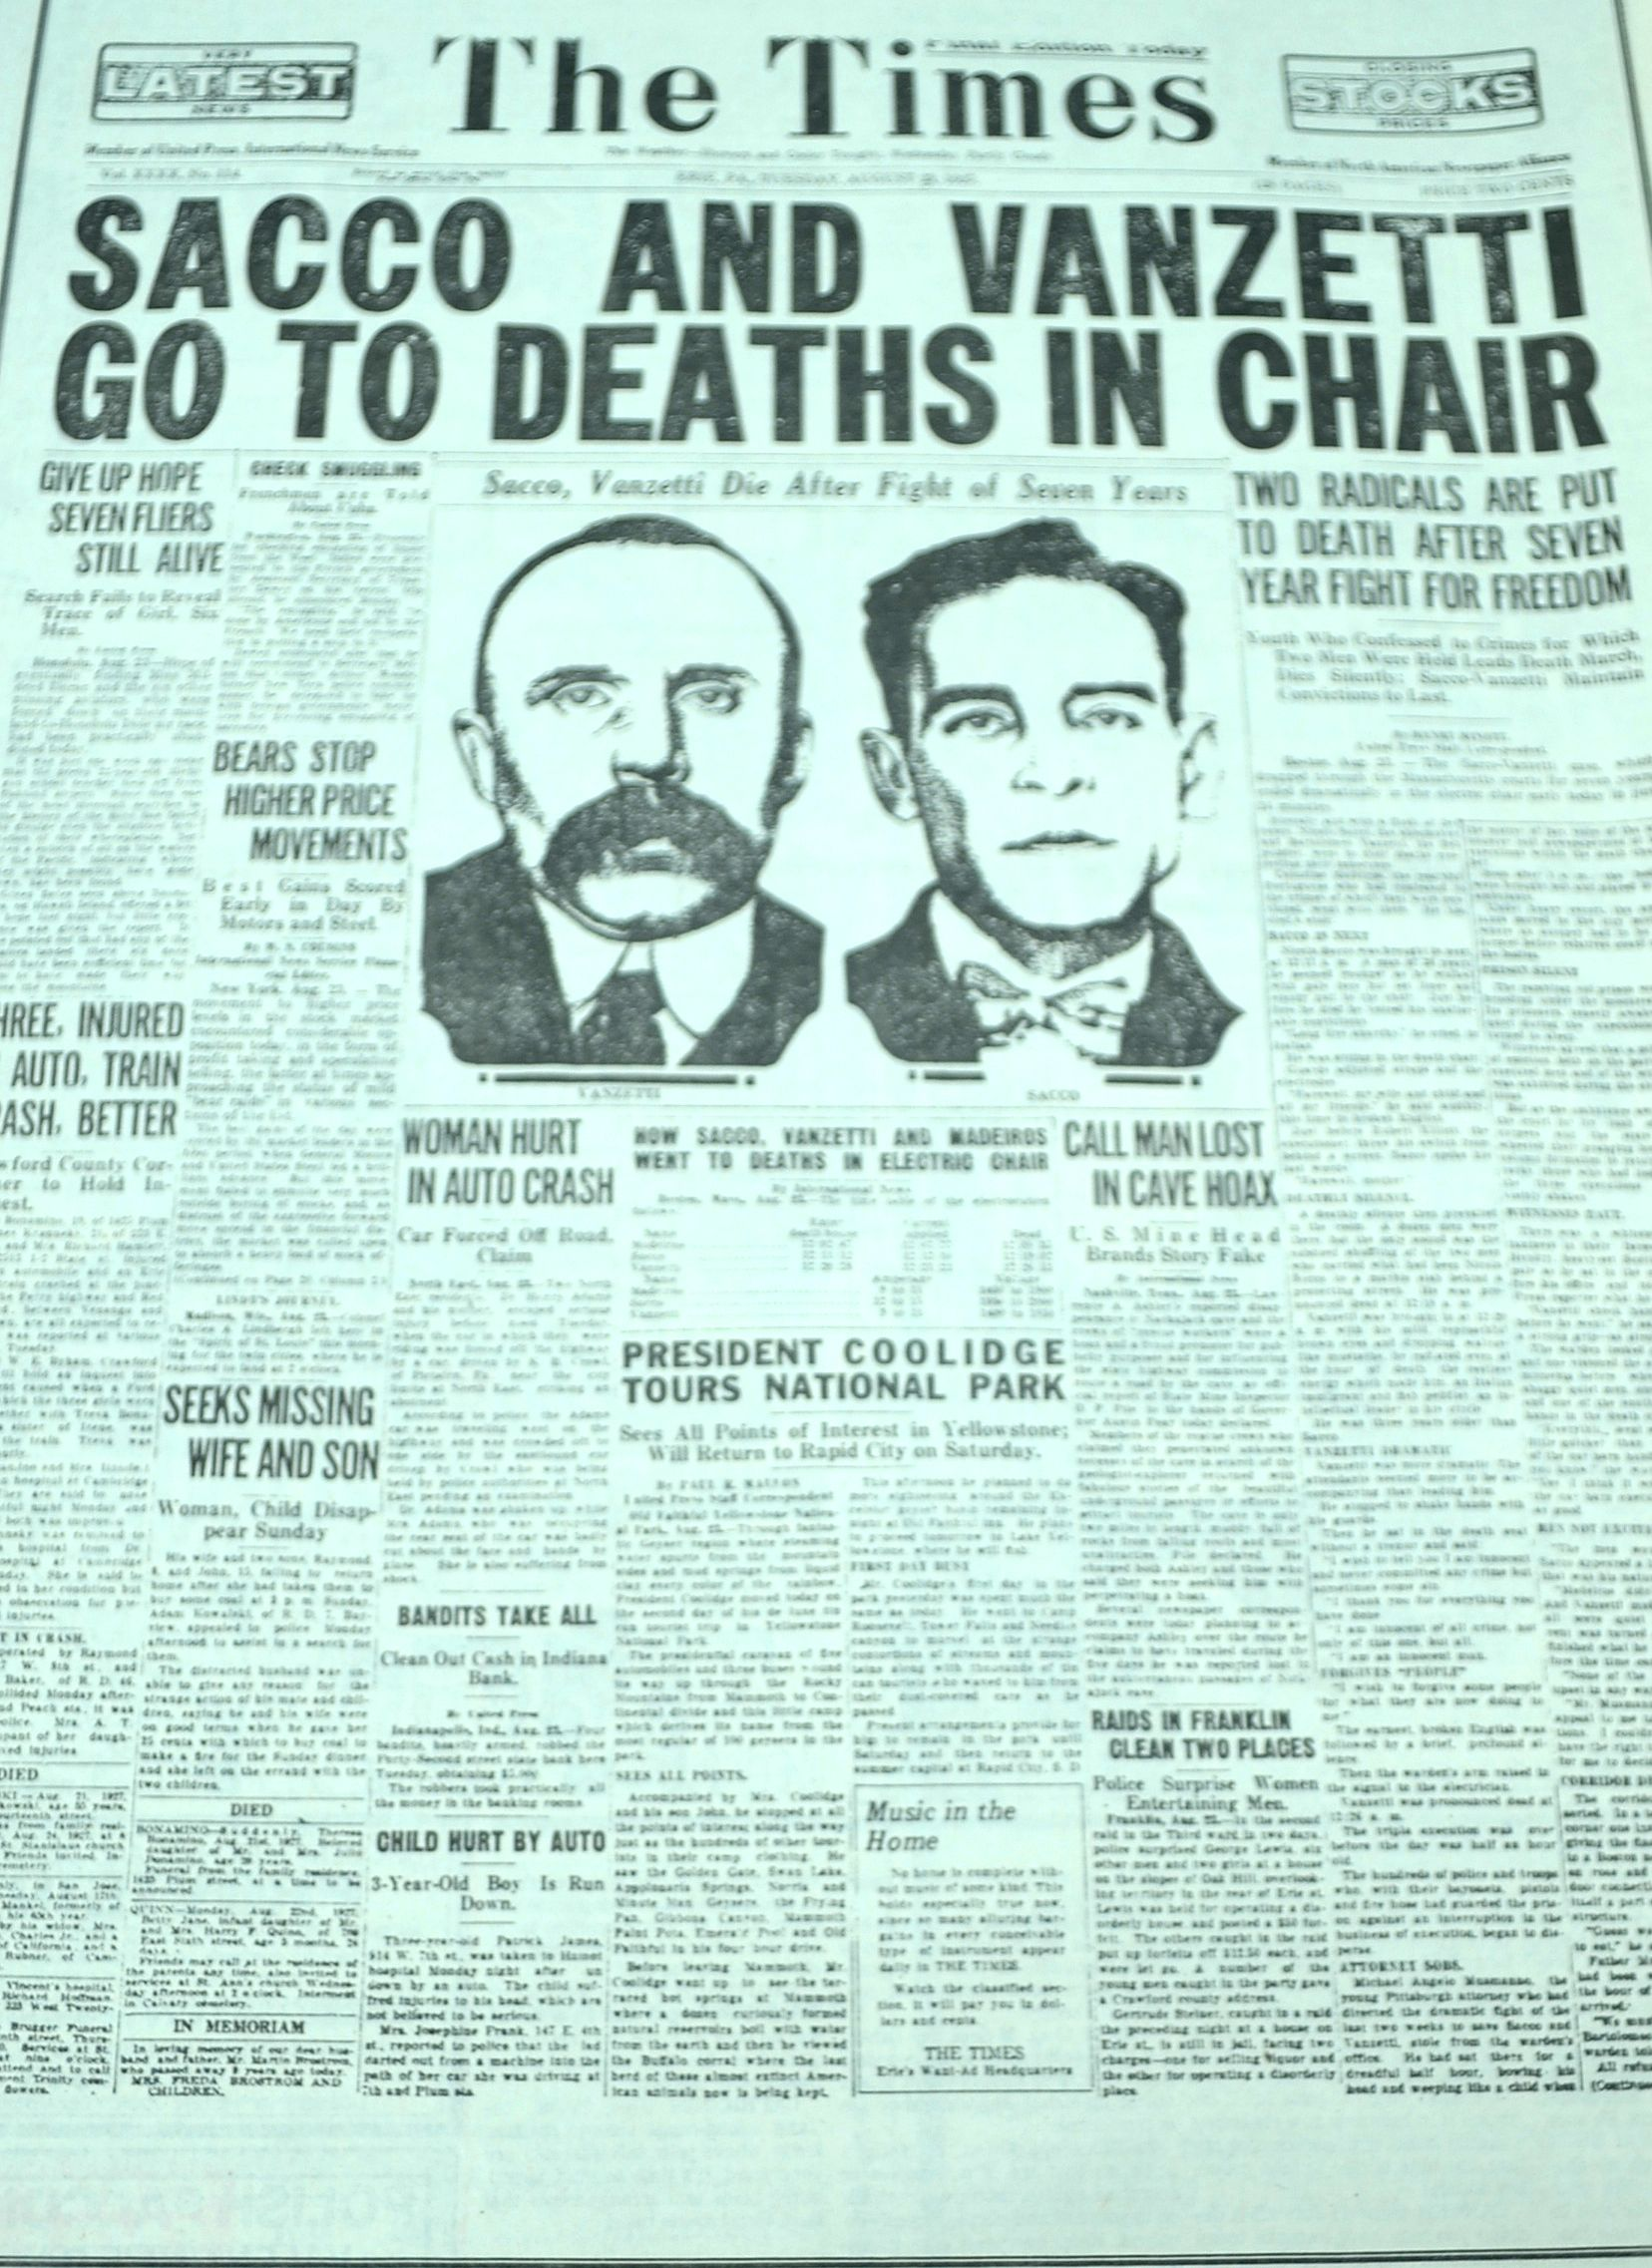 a history of sacco vanzetti conviction and anarchy The sacco-vanzetti affair is the most famous and controversial case in american legal history in our history, justice has not always resulted in fairness, but.